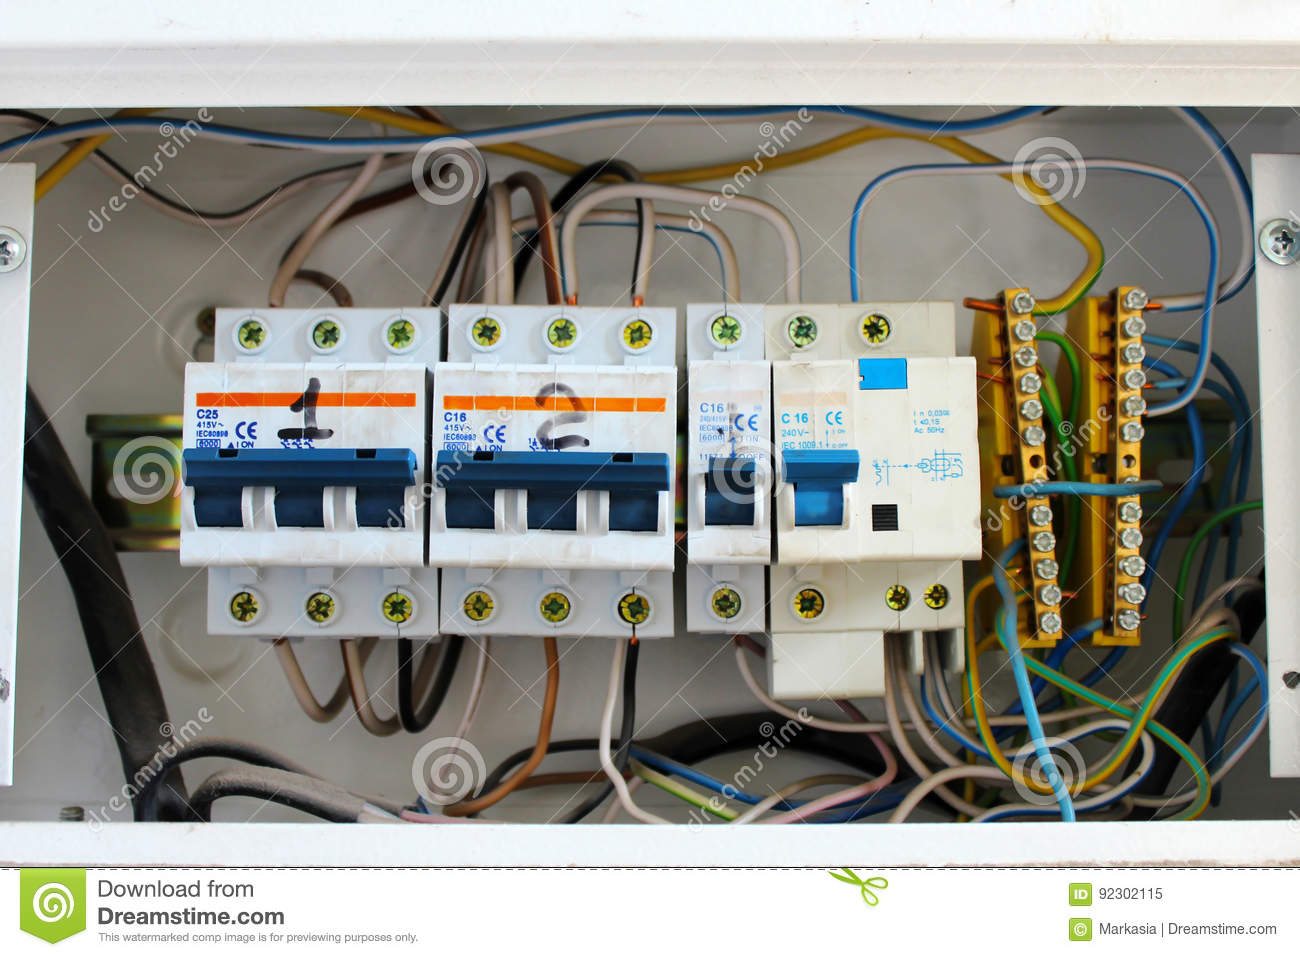 Elektrische Schalttafel Stock Photos - Royalty Free Images